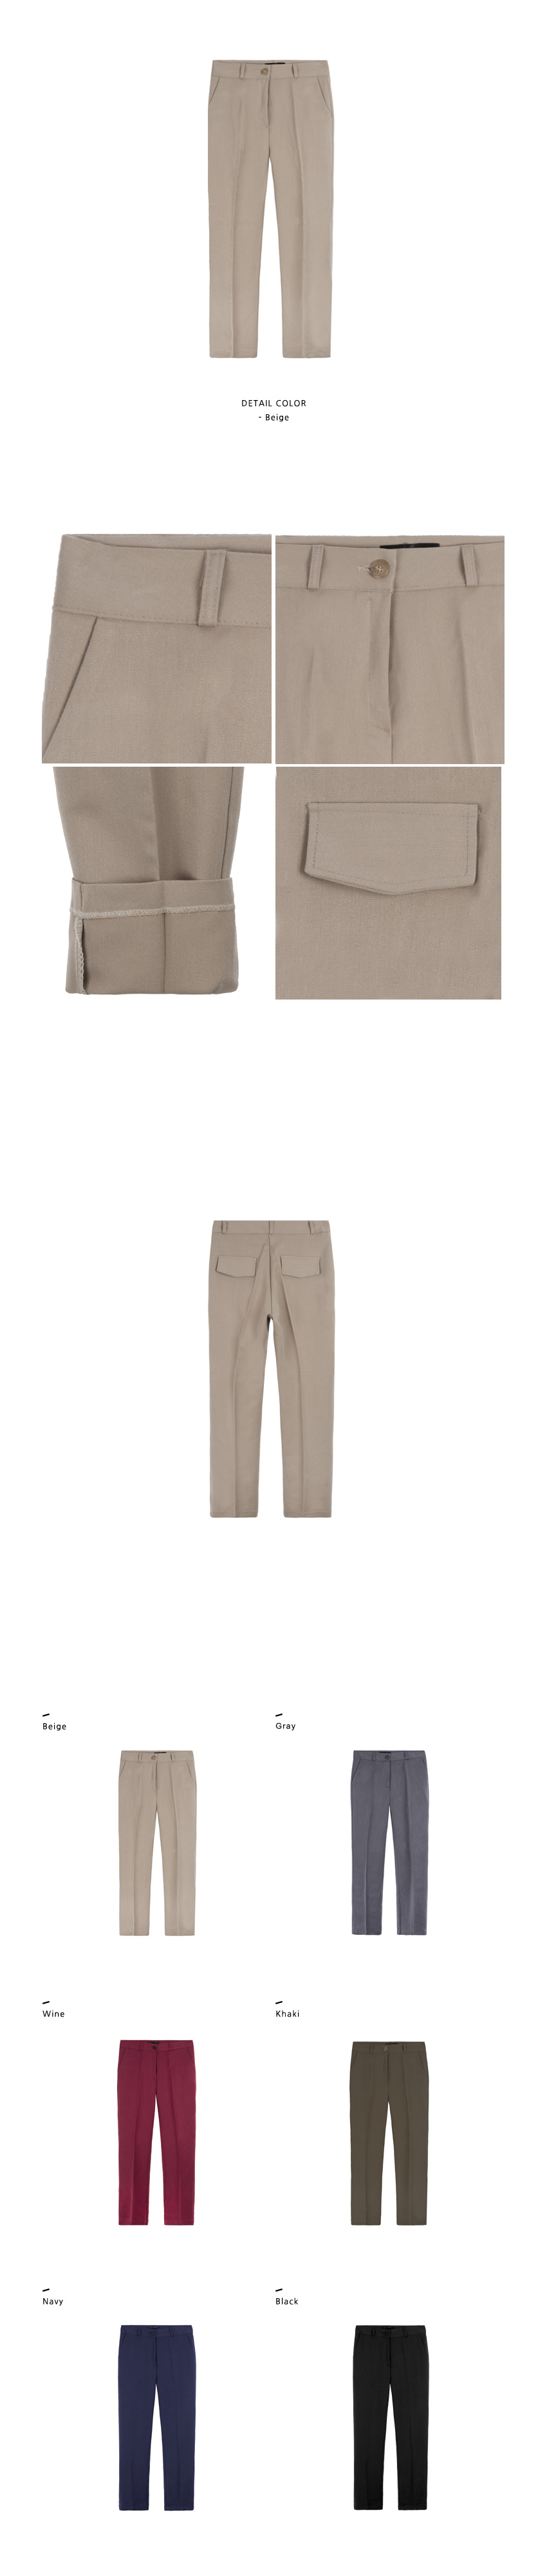 Basic 4-Pocket Slacks|